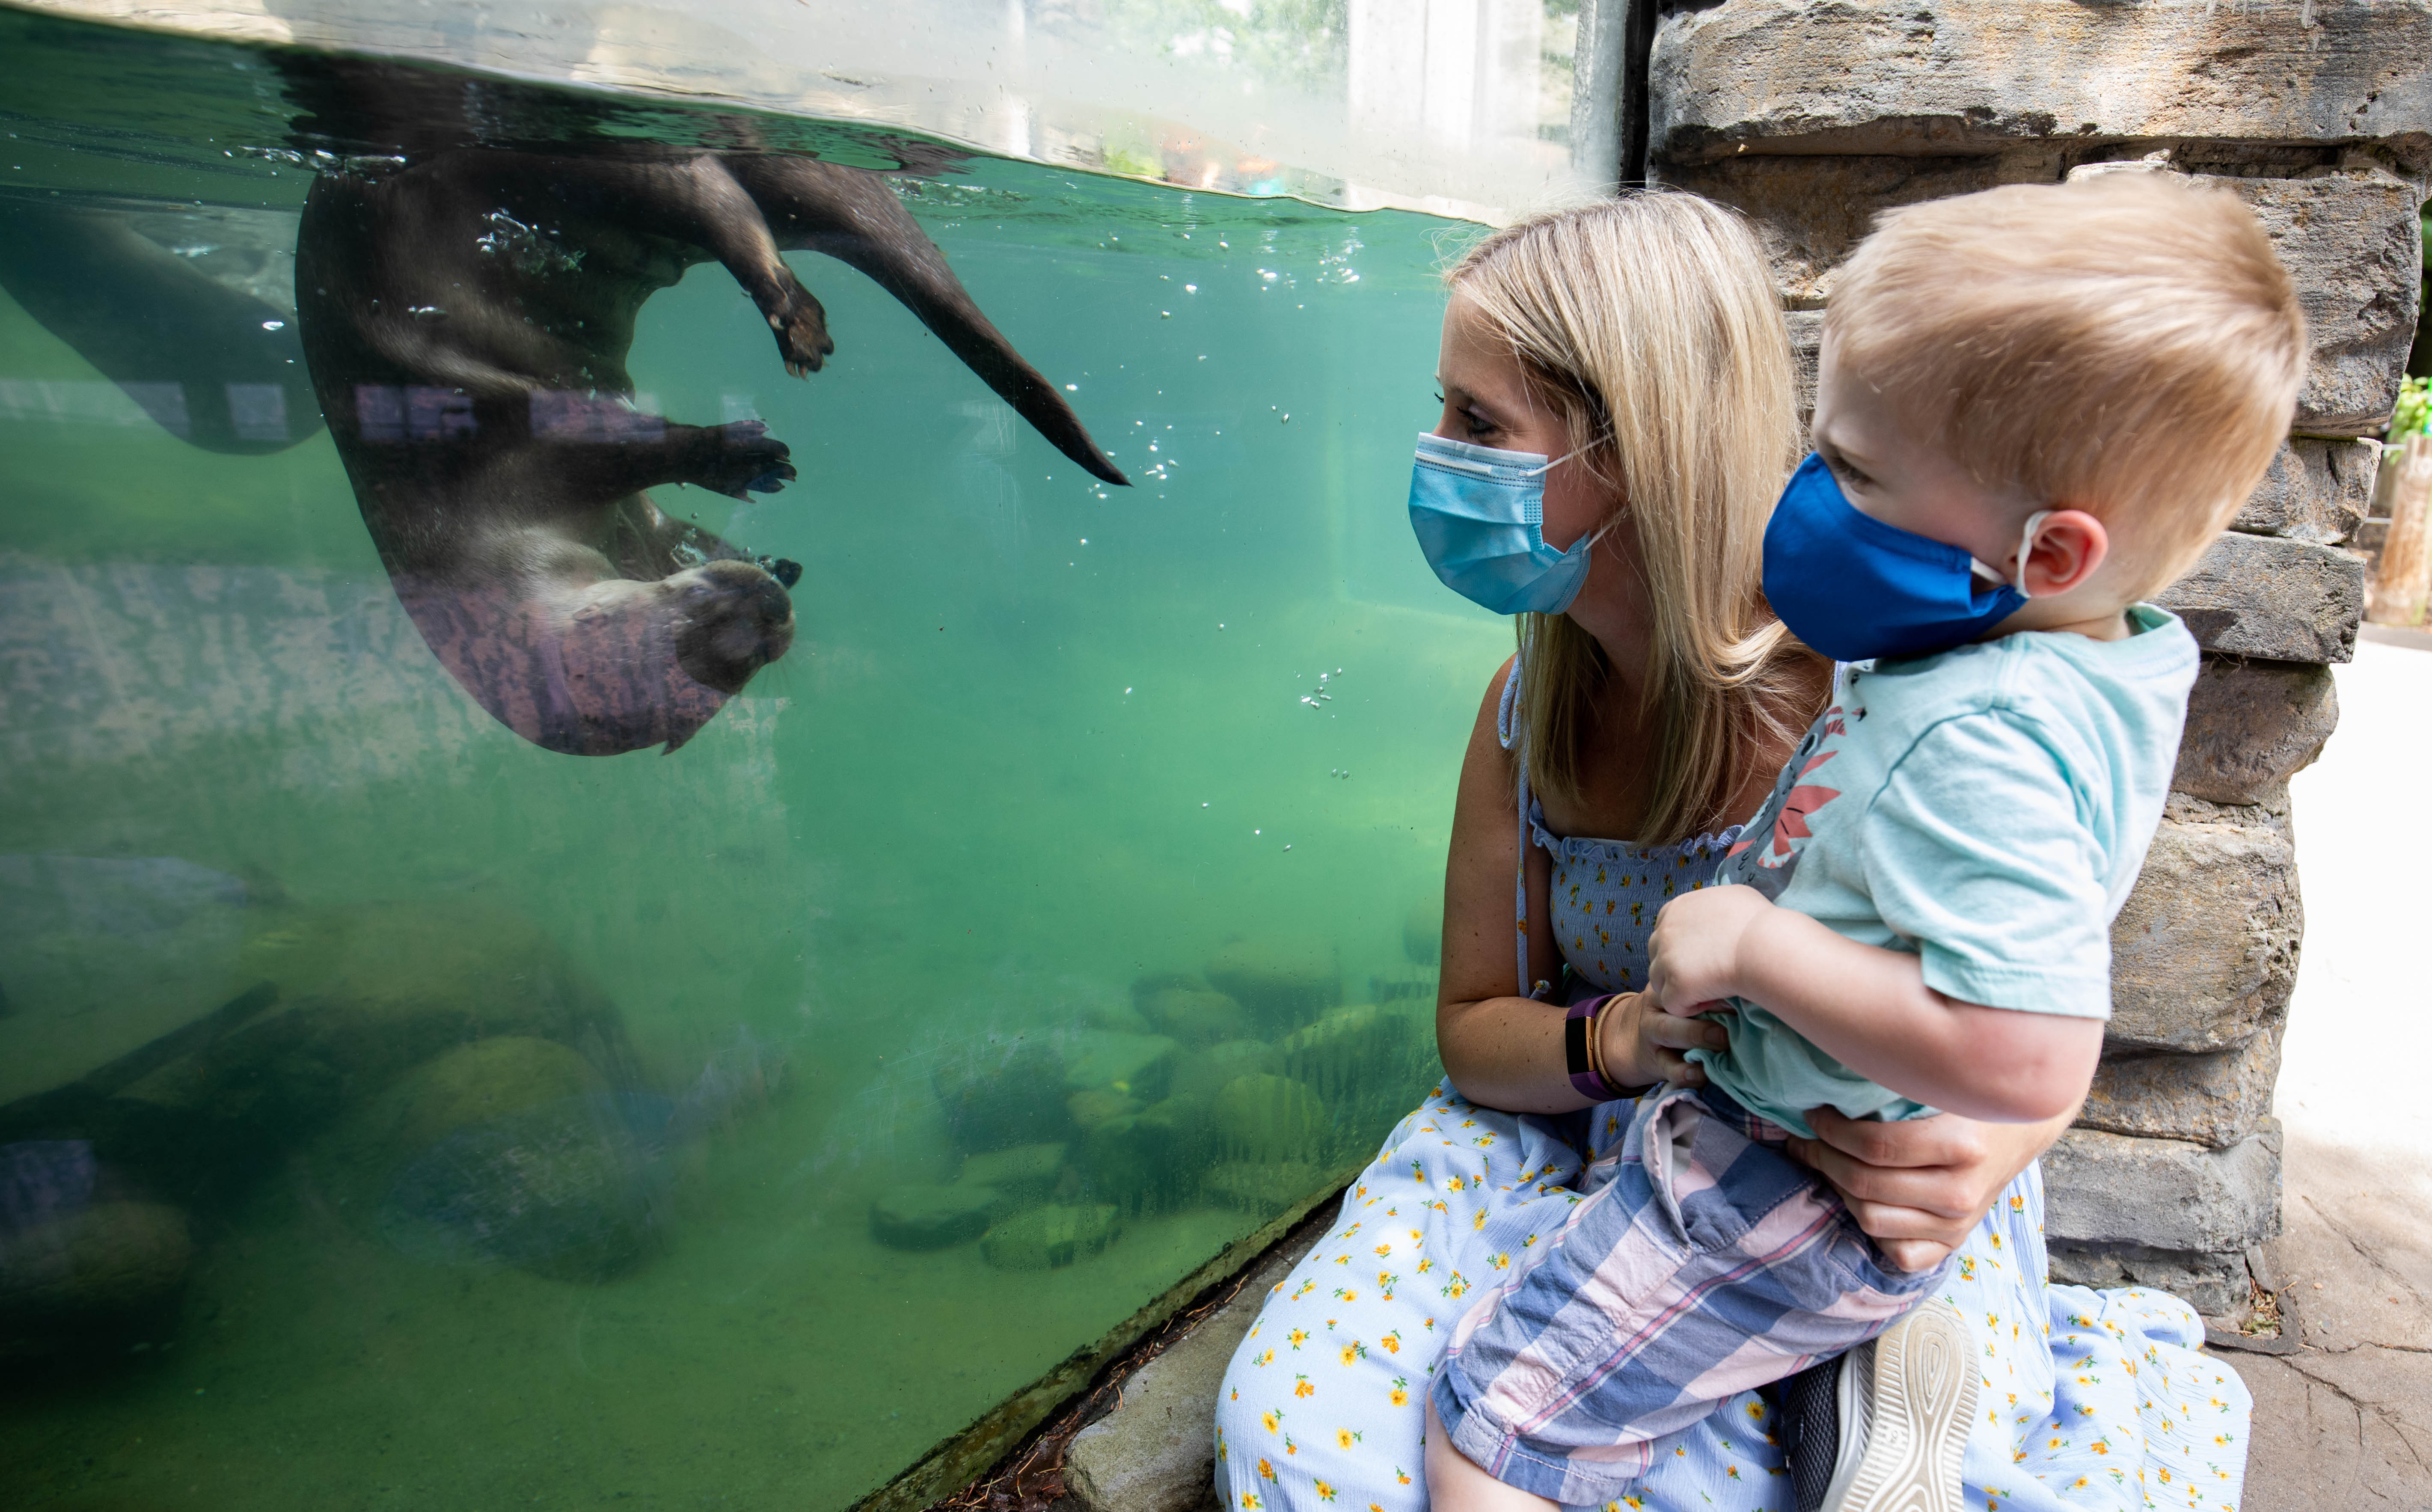 A woman and child watch an otter swimming